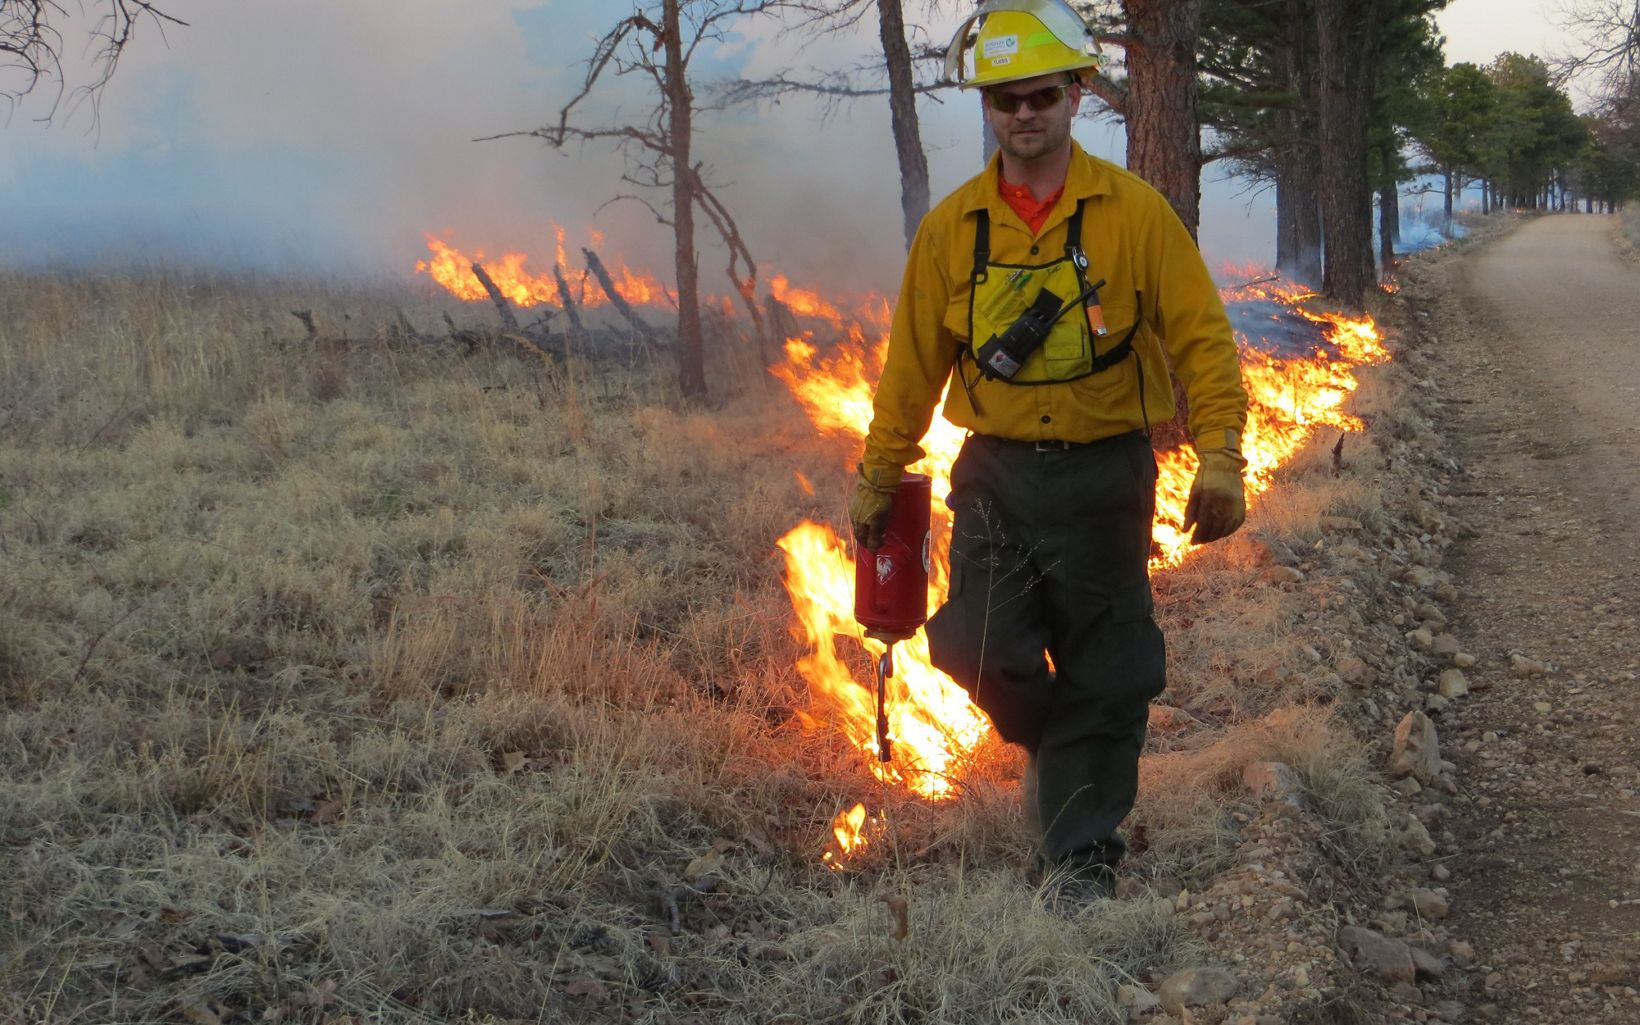 Preserve manager igniting prescribed fire at J.T. Nickel.